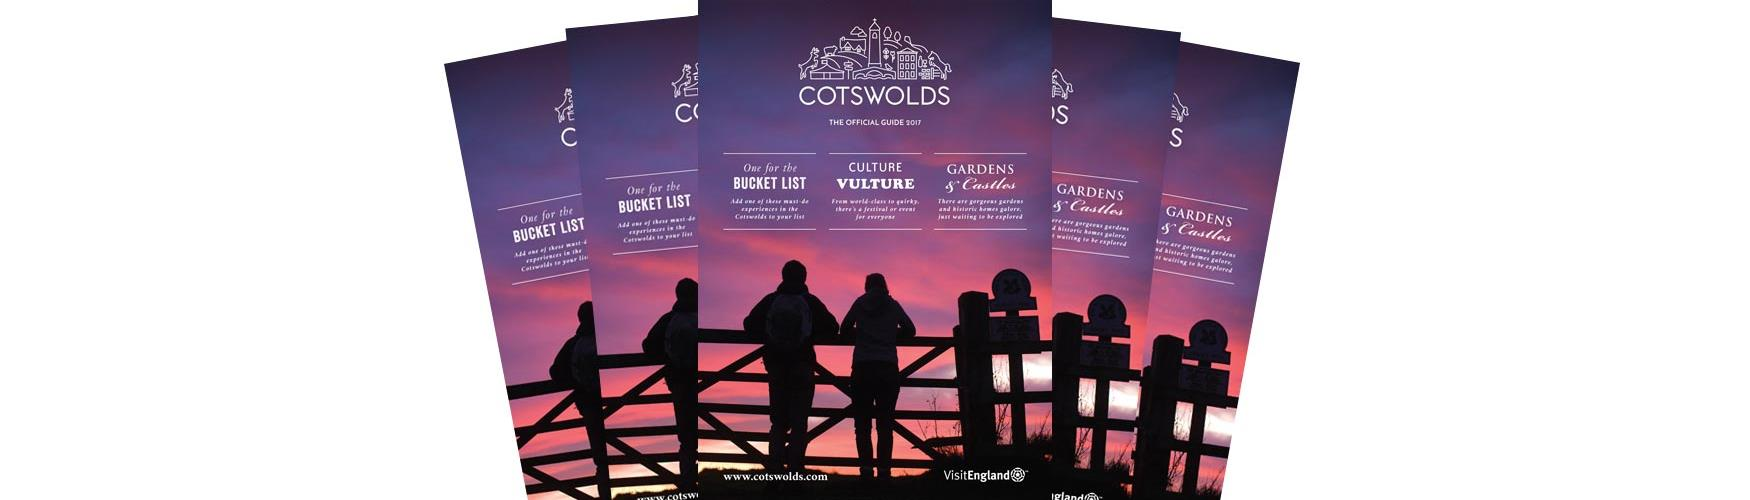 Advertise in the Cotswolds Visitor Guide